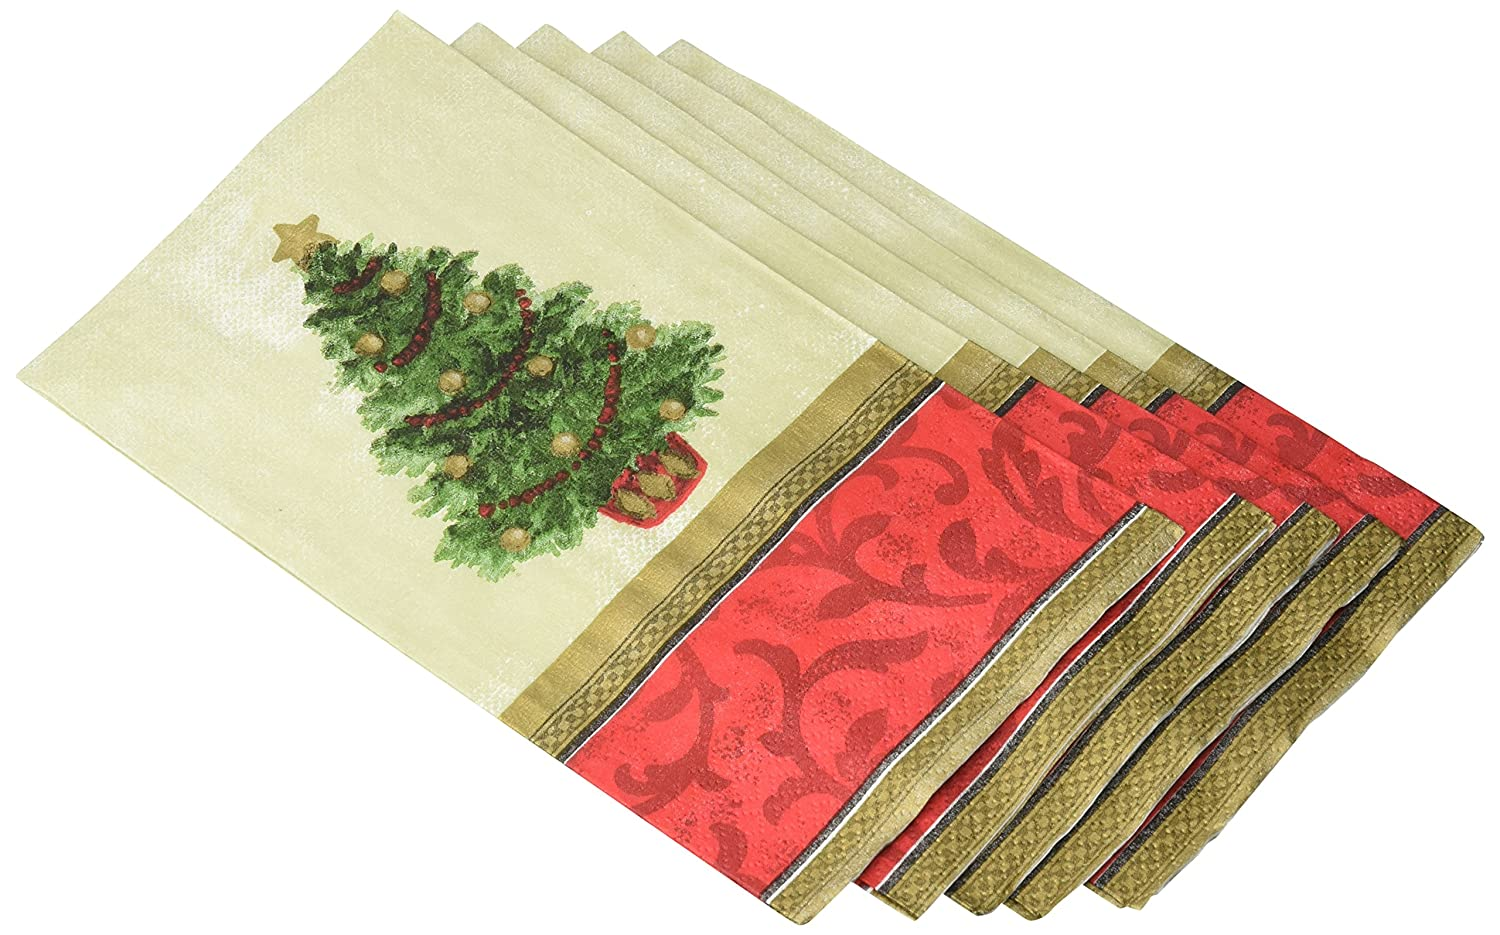 Party Tableware Amscam AMI 539900 16 Ct Classic Christmas Tree Guest Towels